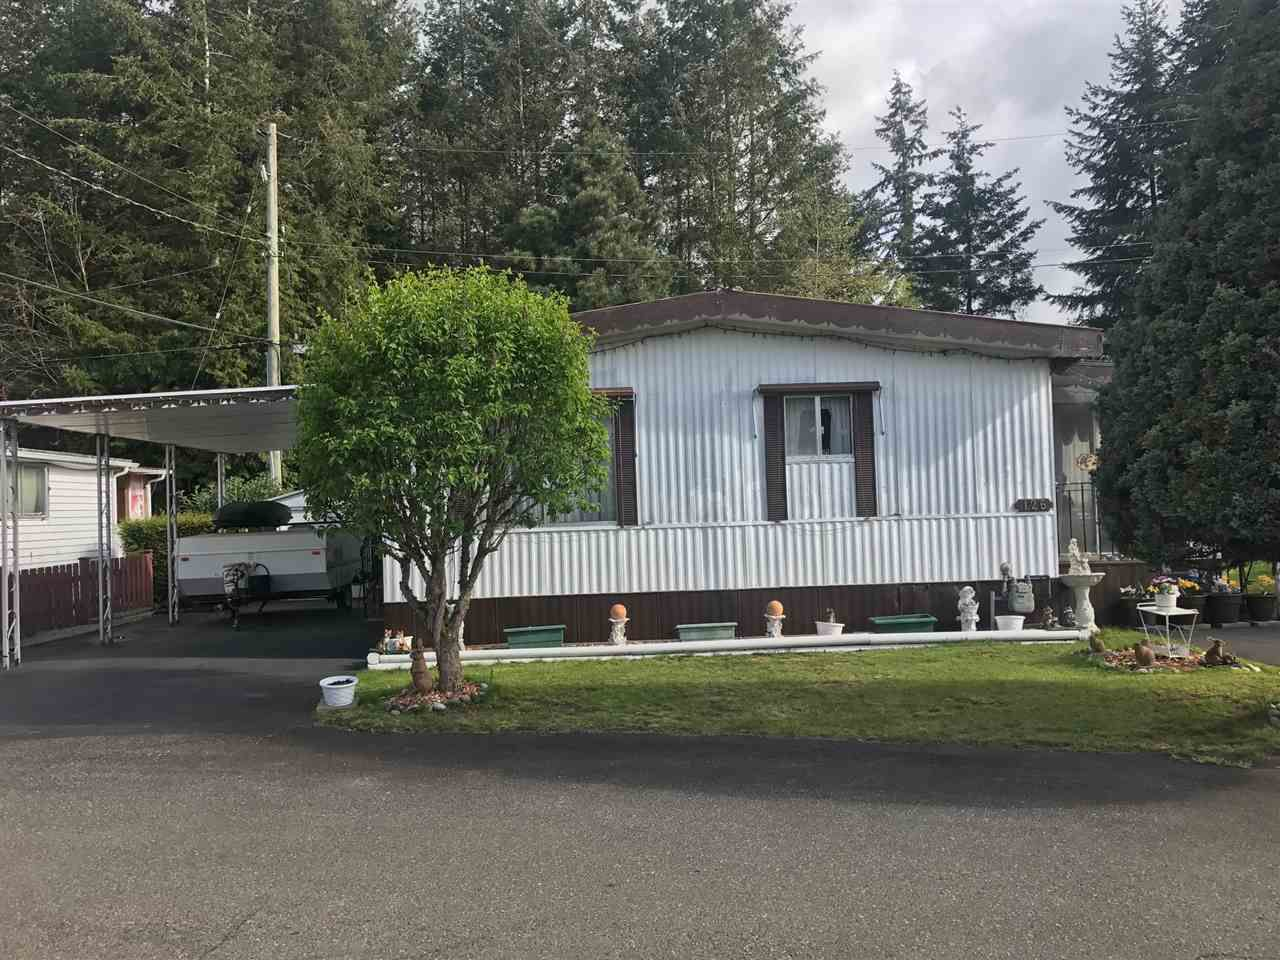 """Main Photo: 126 3031 200 Street in Langley: Brookswood Langley Manufactured Home for sale in """"CEDAR CREEK ESTATES"""" : MLS®# R2160971"""